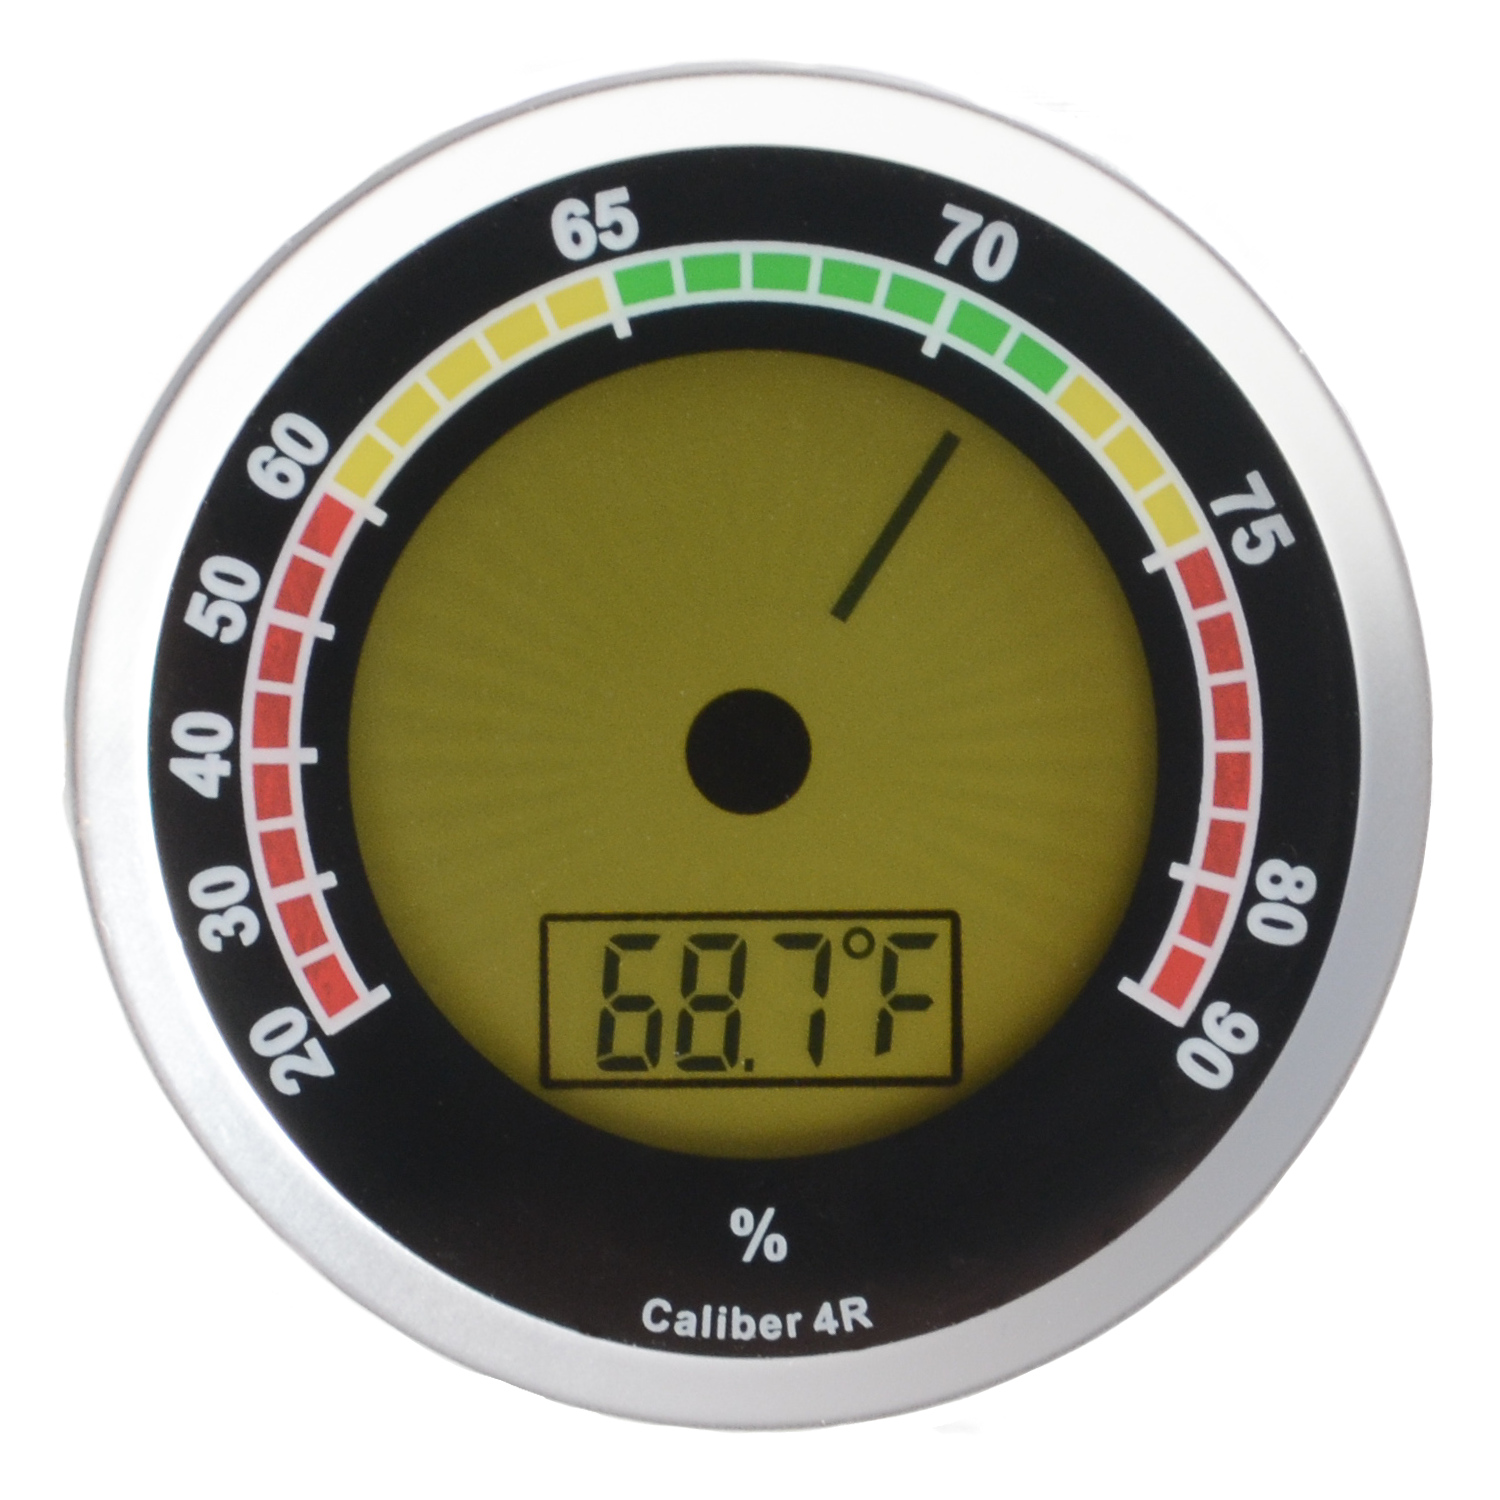 Cigar Oasis Western Humidor Caliber 4R Silver Digital Hygrometer and Thermometer